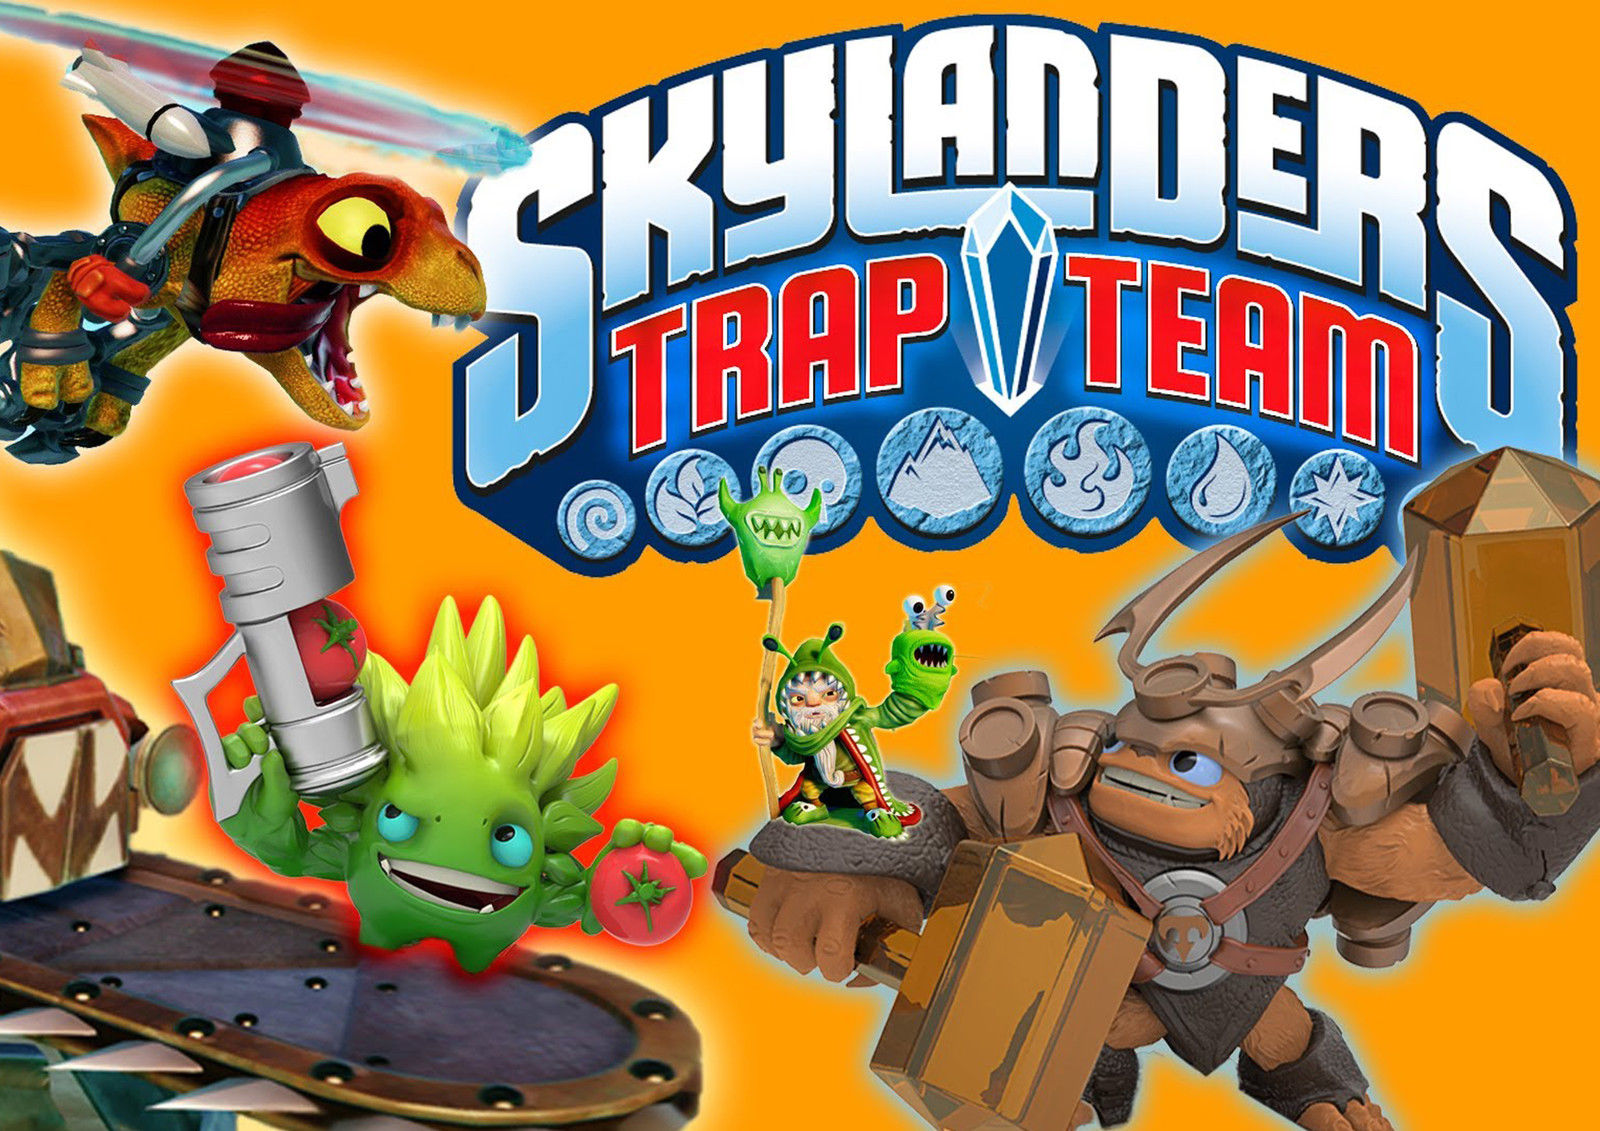 Uncategorized Skylandersgame compare prices on skylanders game online shoppingbuy low price trap team giant one piece poster sizes a2 a3 a4